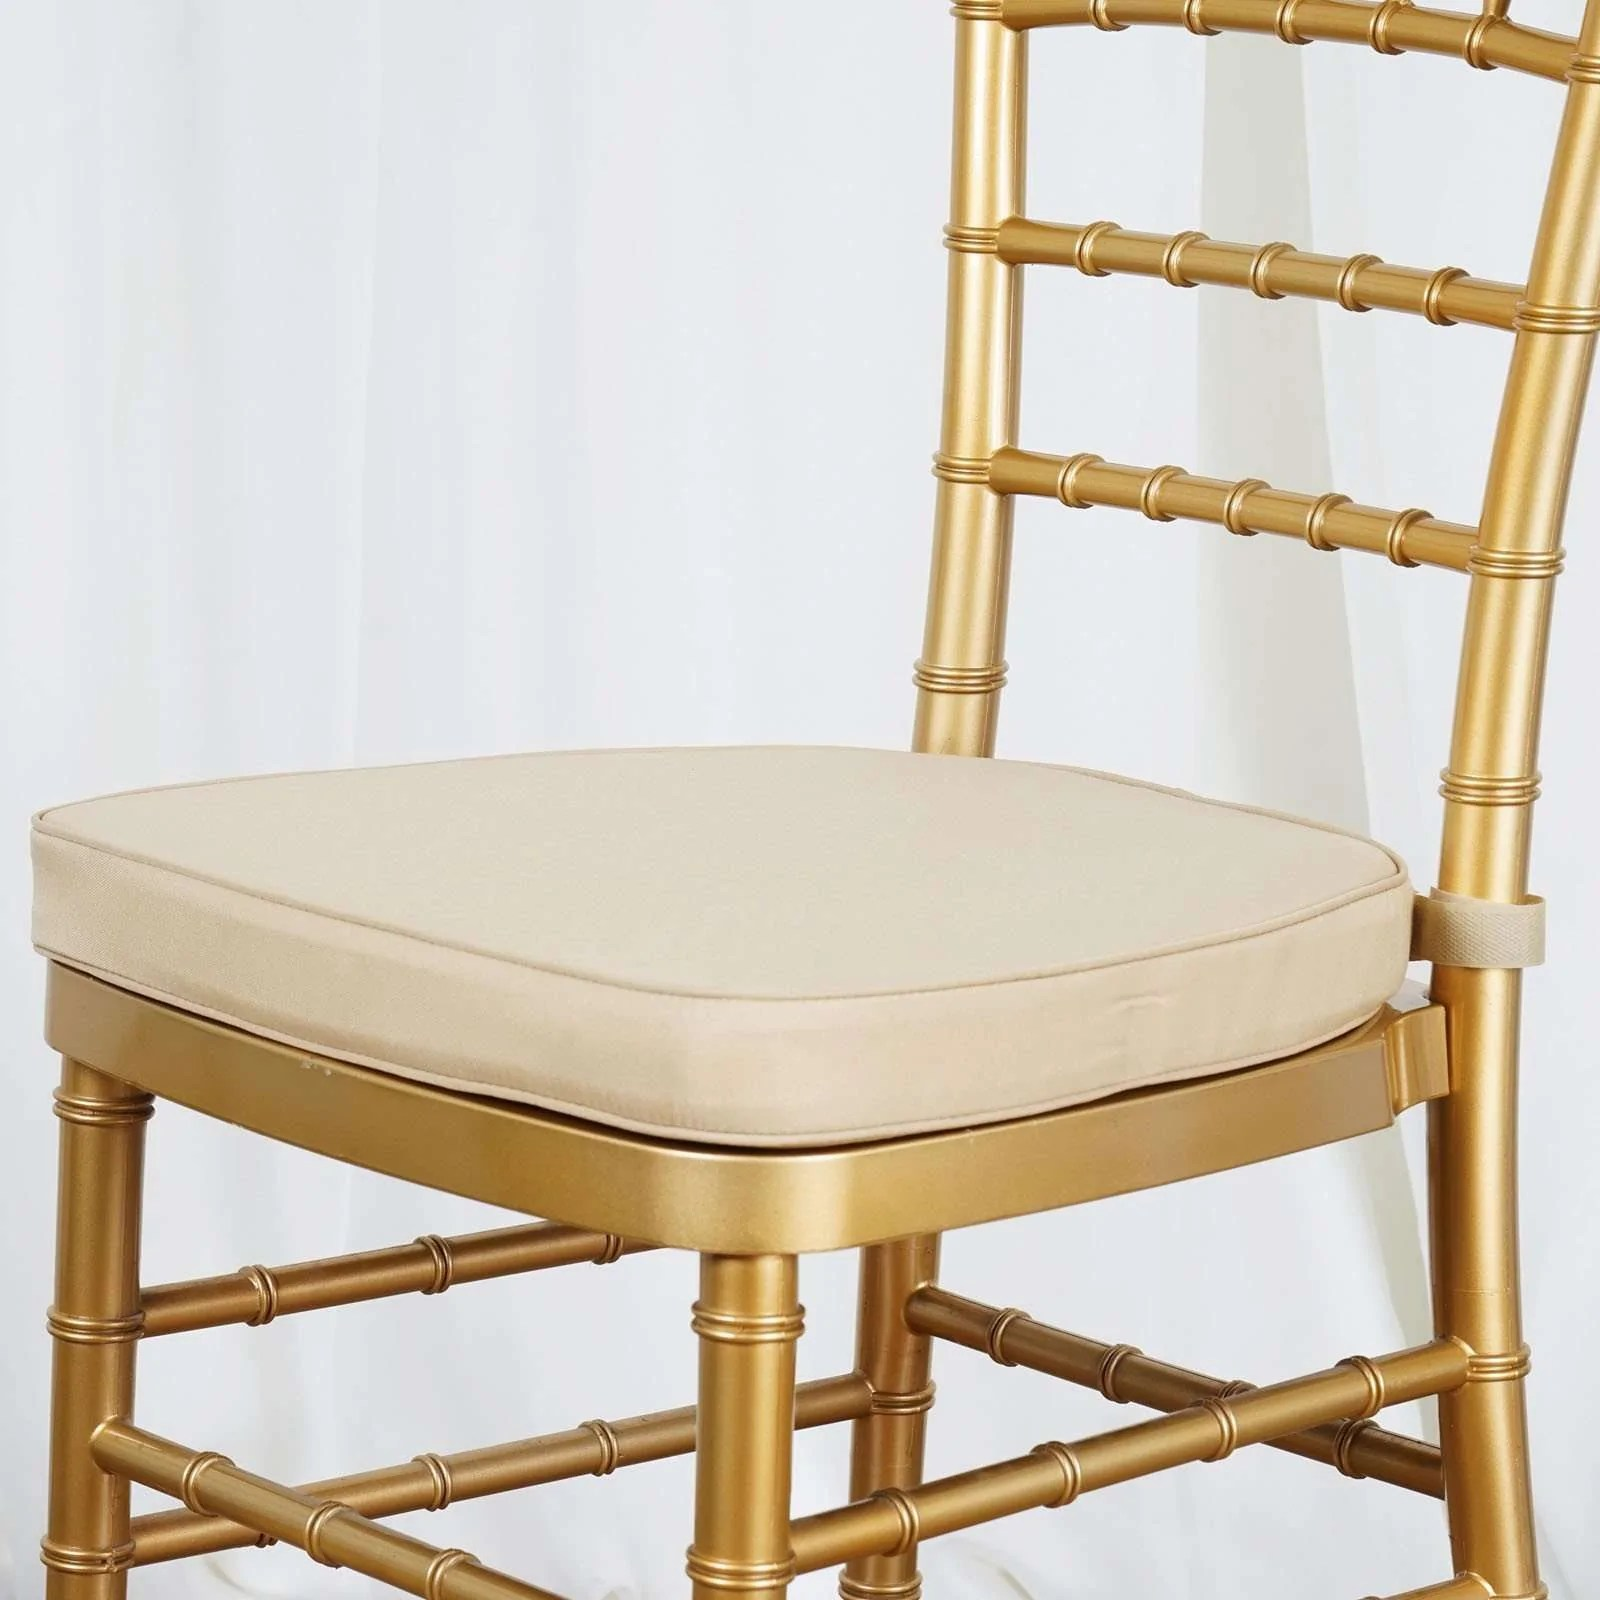 chiavari chairs wholesale two person rocking chair 2 thick gold cushion for beechwood party wood resin event decoration